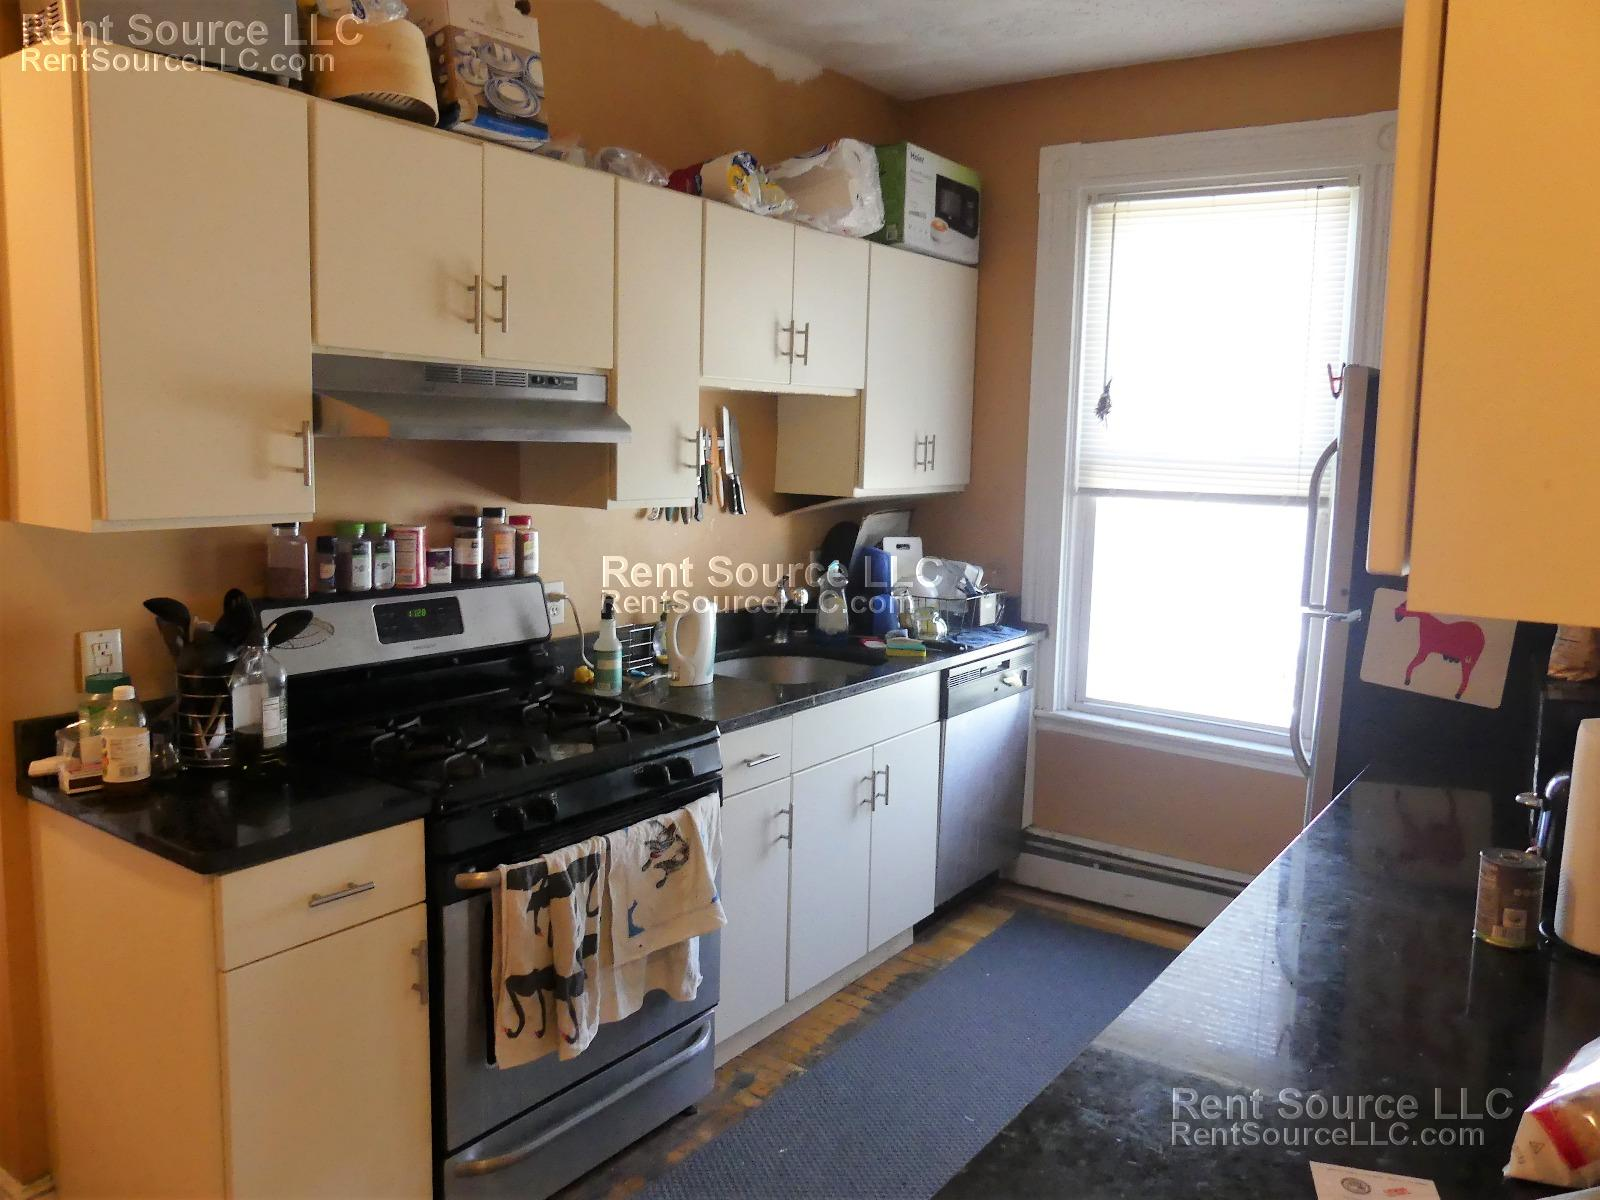 Inman Square 4 Bed 2 Full Baths! - Excellent Space- Pets OK! 9/1